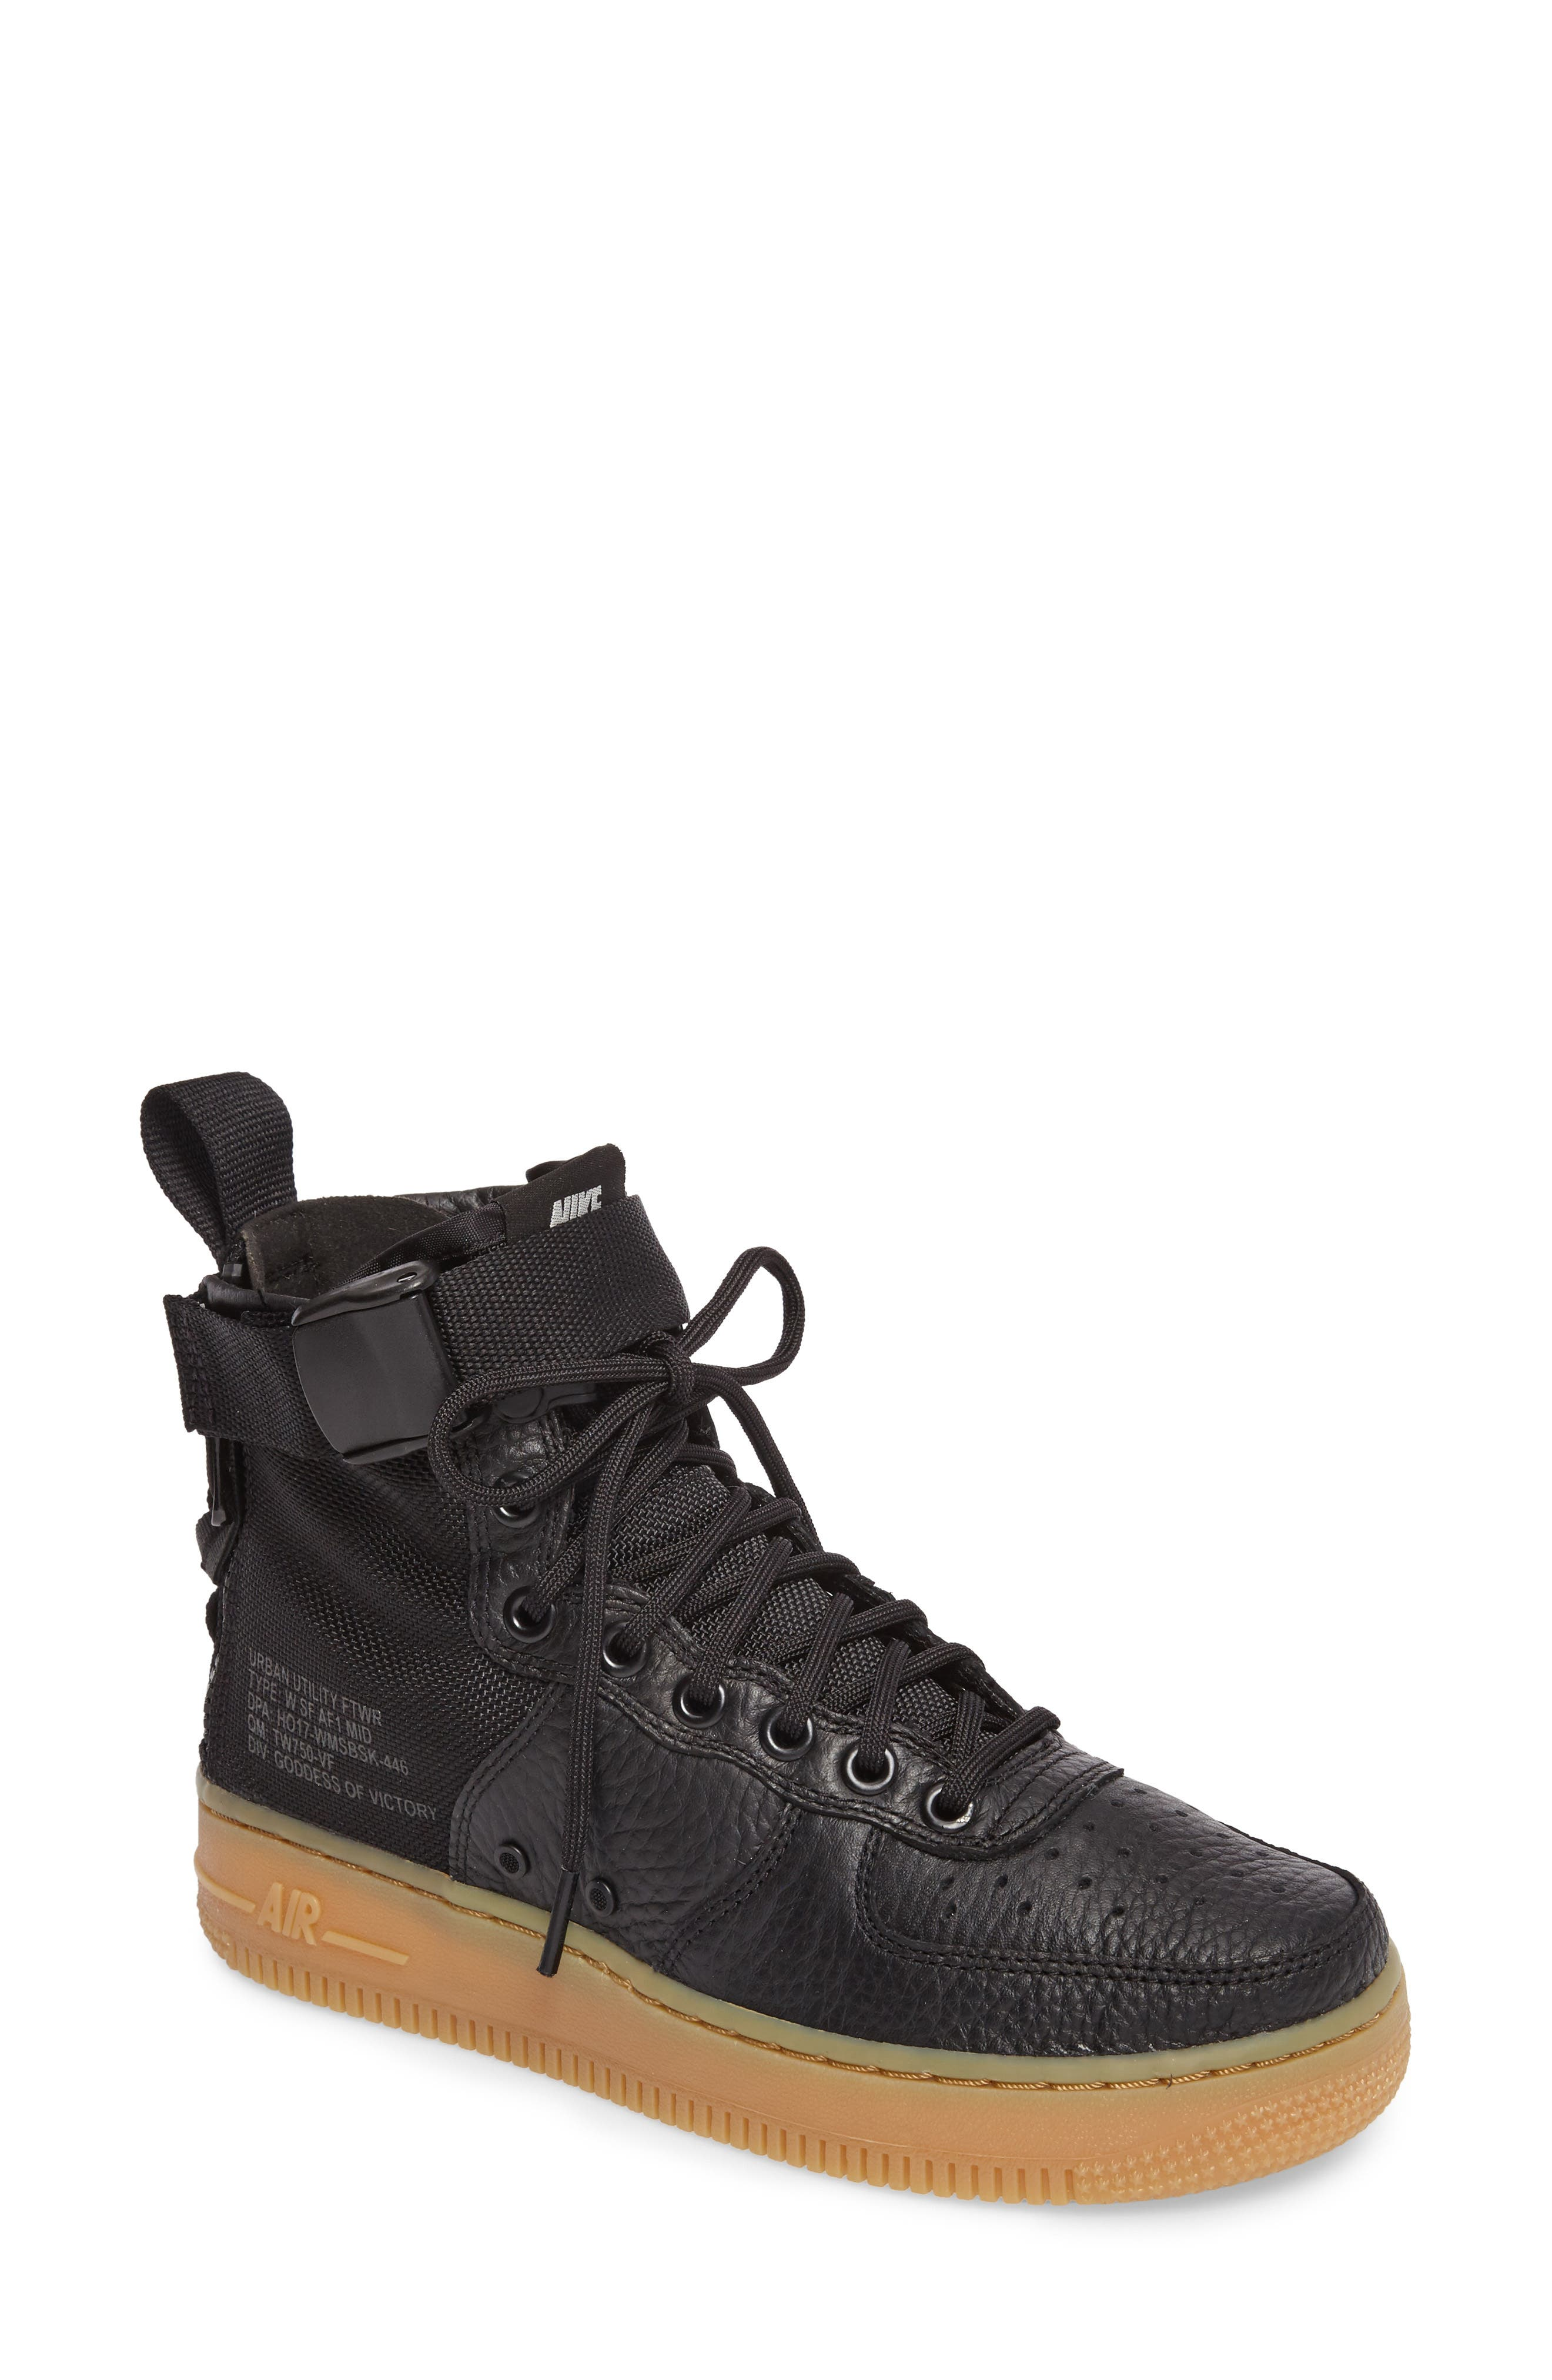 SF Air Force 1 Mid Sneaker,                         Main,                         color, 002